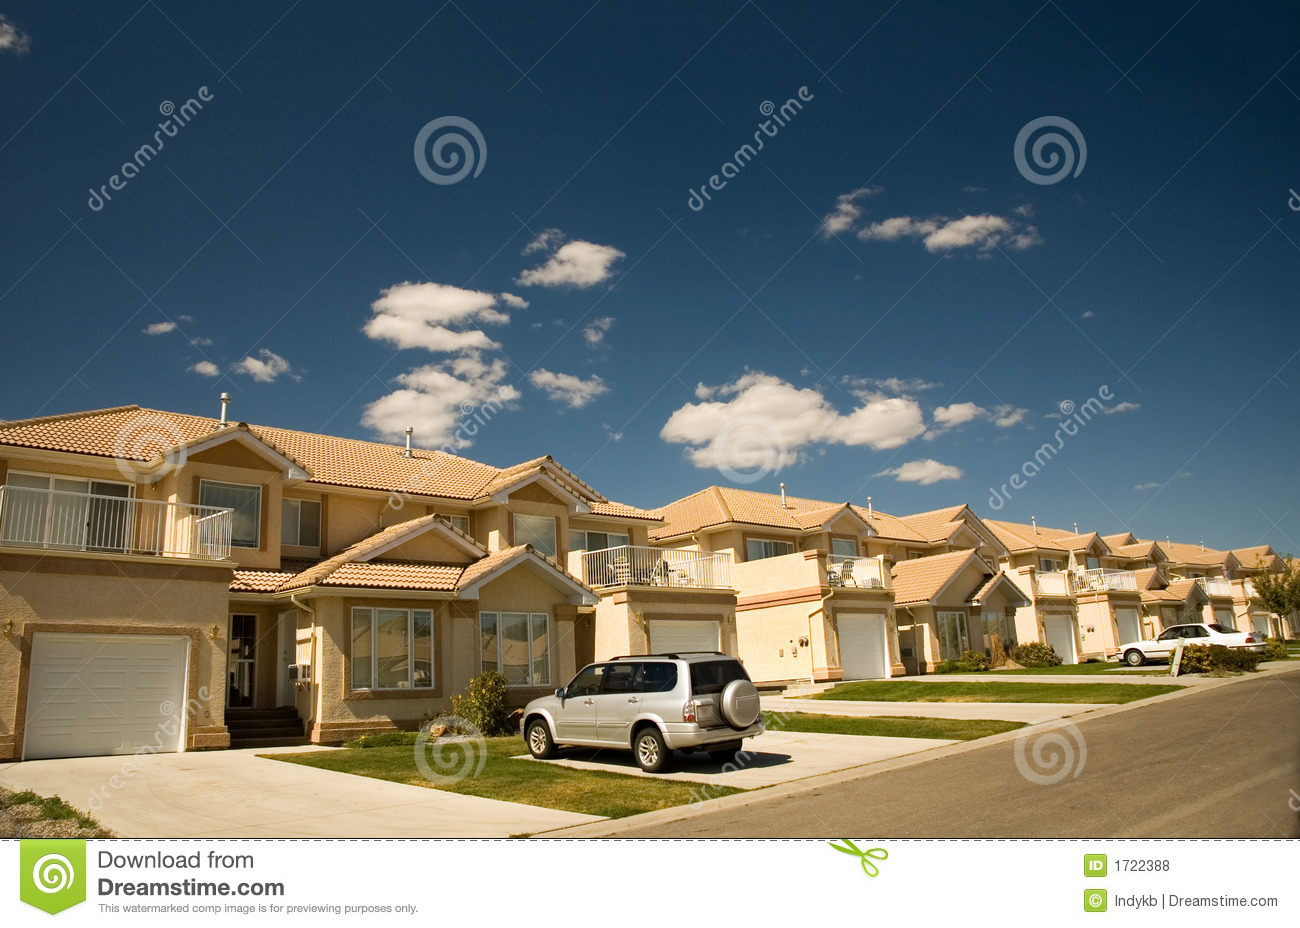 Luxury homes royalty free stock photos image 1722388 for Free luxury home images